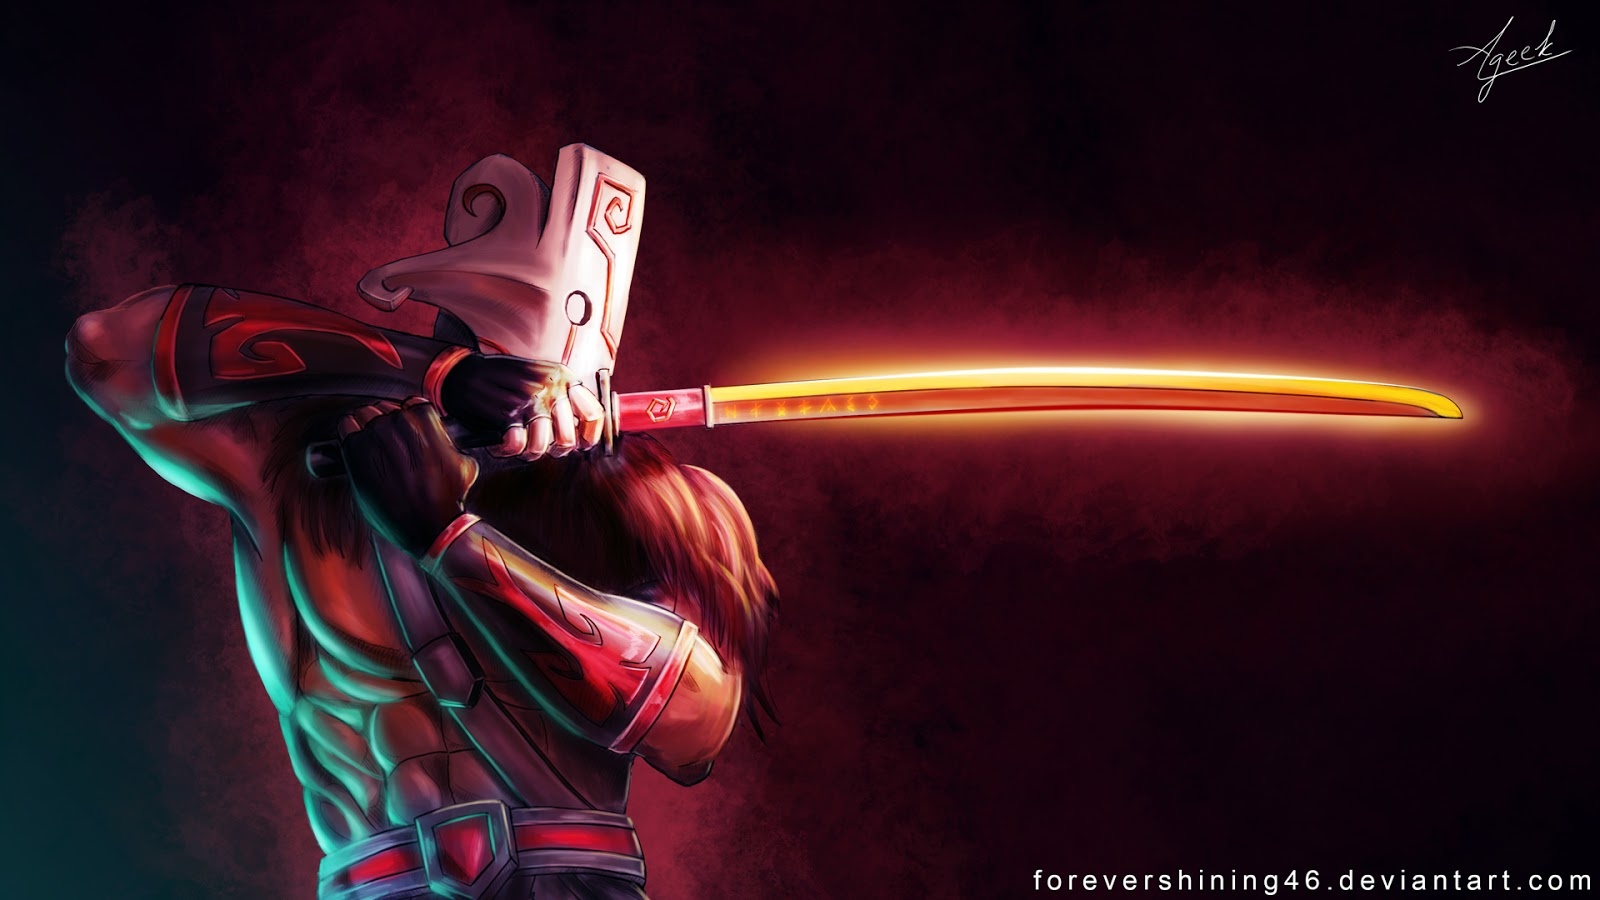 45 WALLPAPER HD HERO DOTA SUPER KEREN